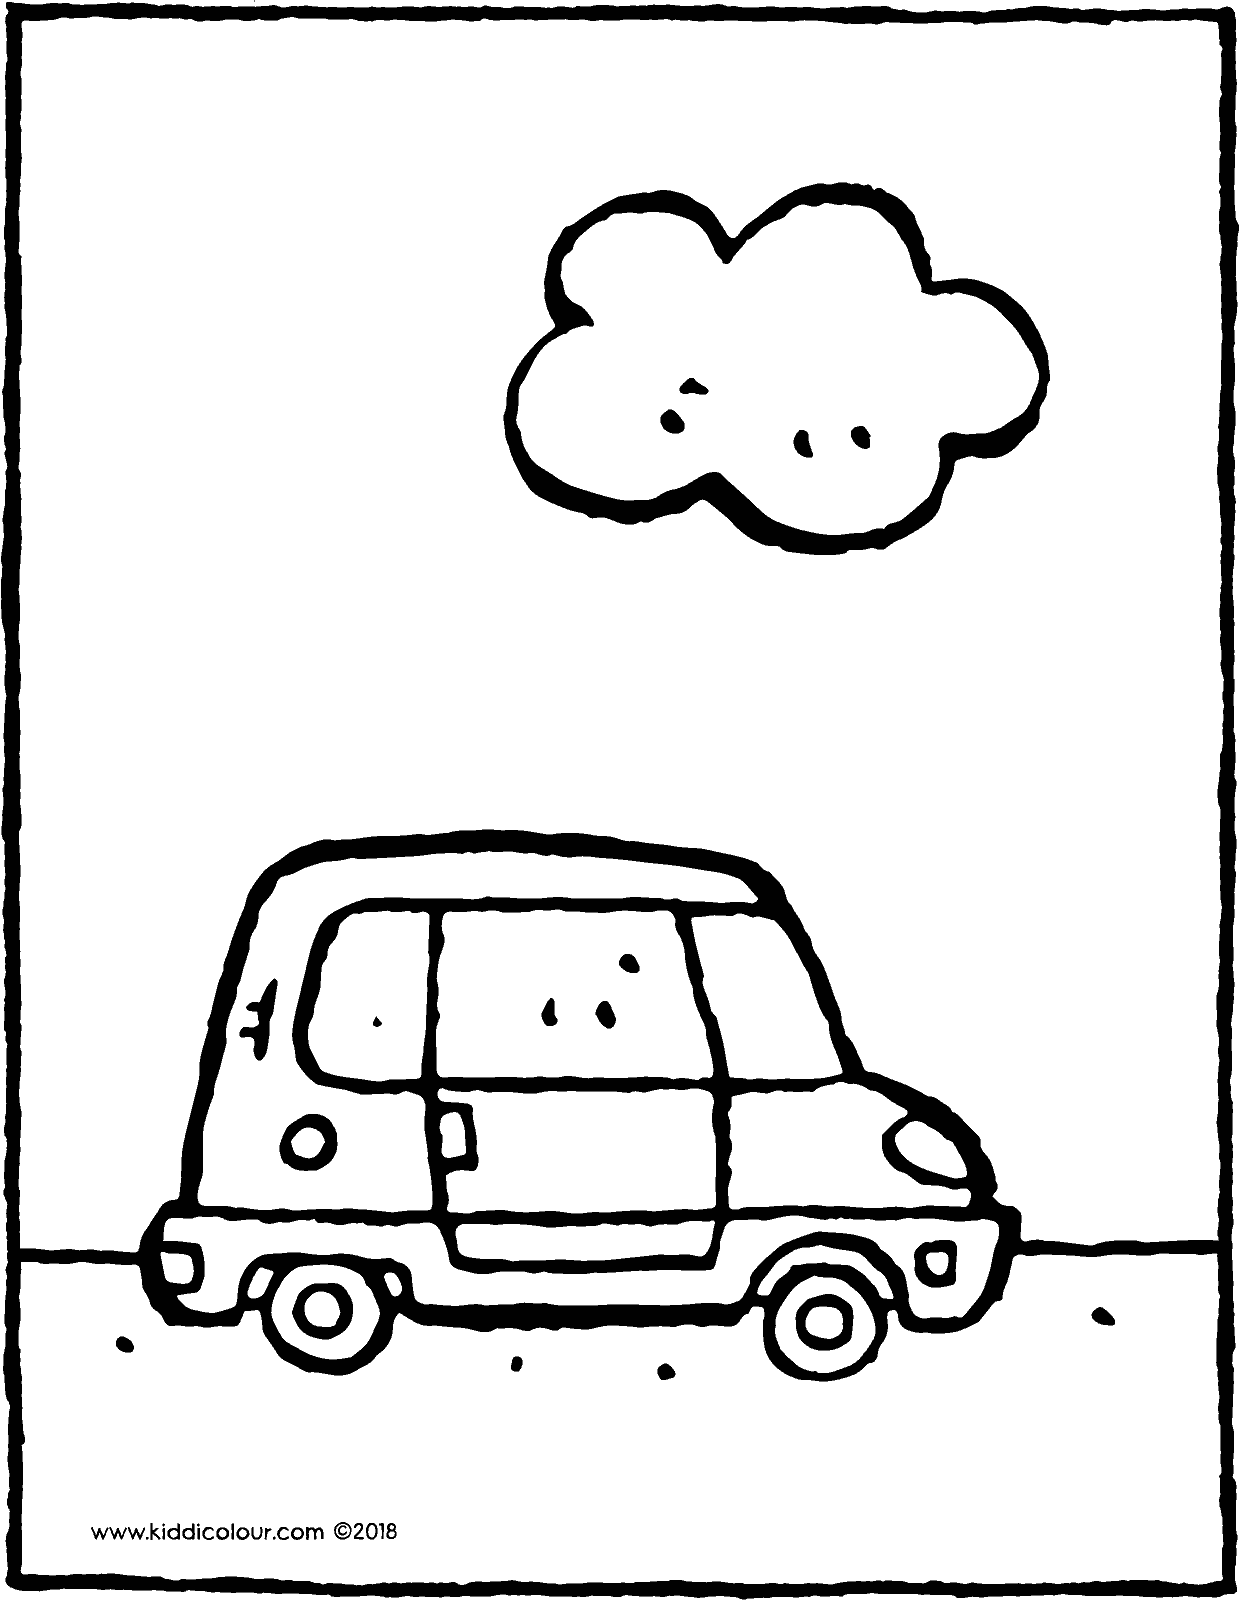 small car with cloud